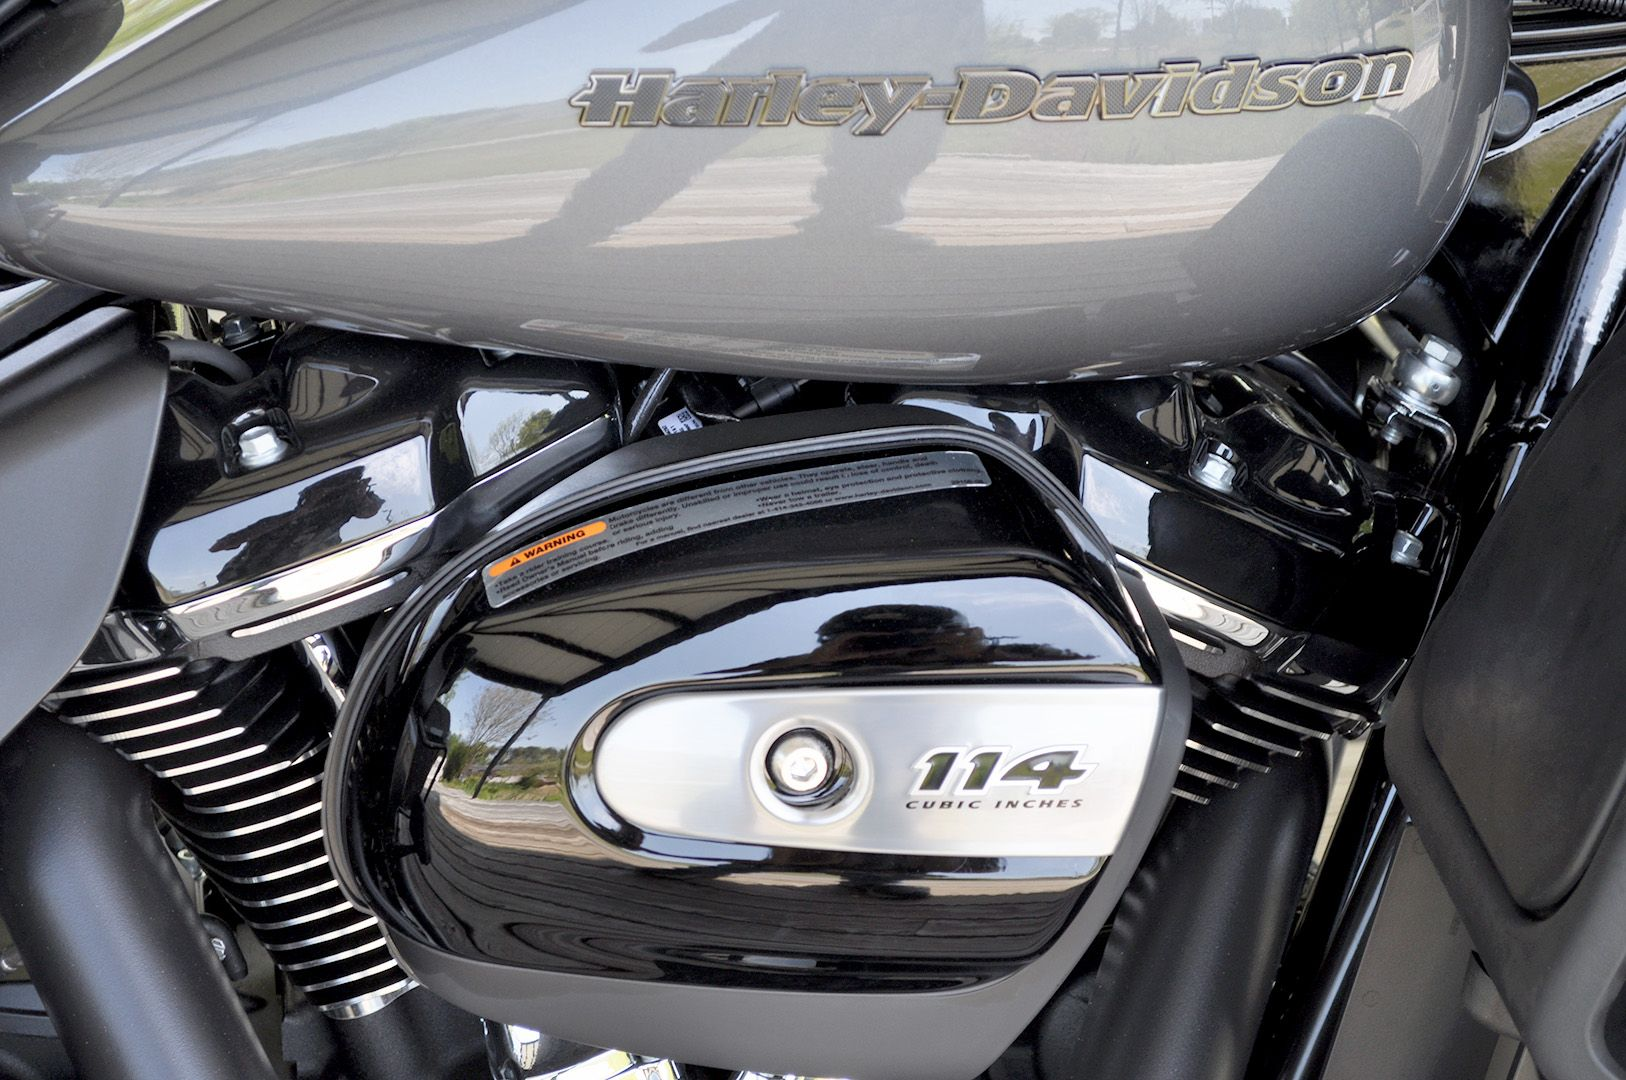 New 2021 Harley-Davidson Ultra Limited